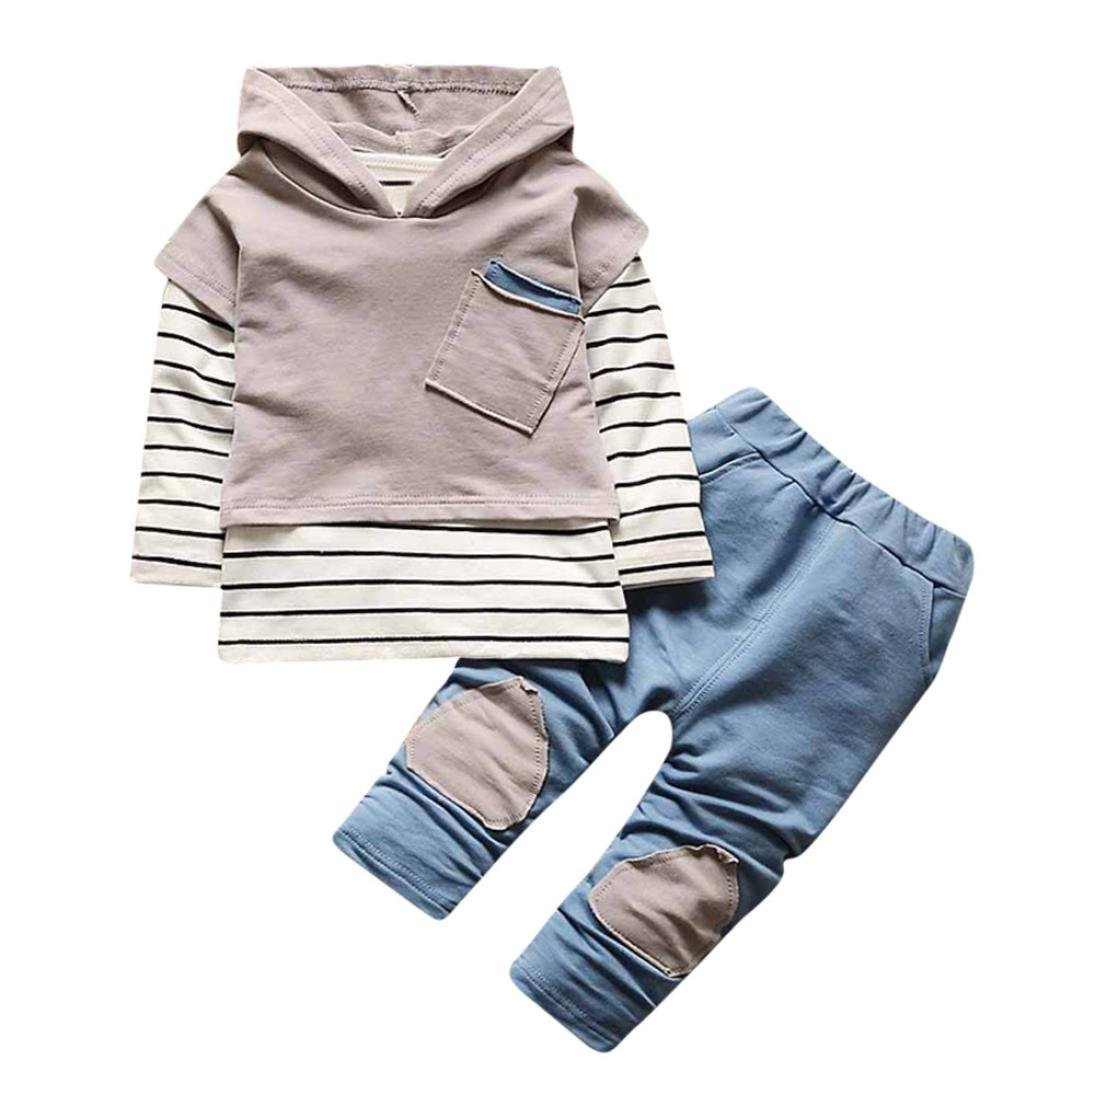 Festwolf Kids Baby Outfits Boy Girls Set T-shirt Tops+Pants Clothes